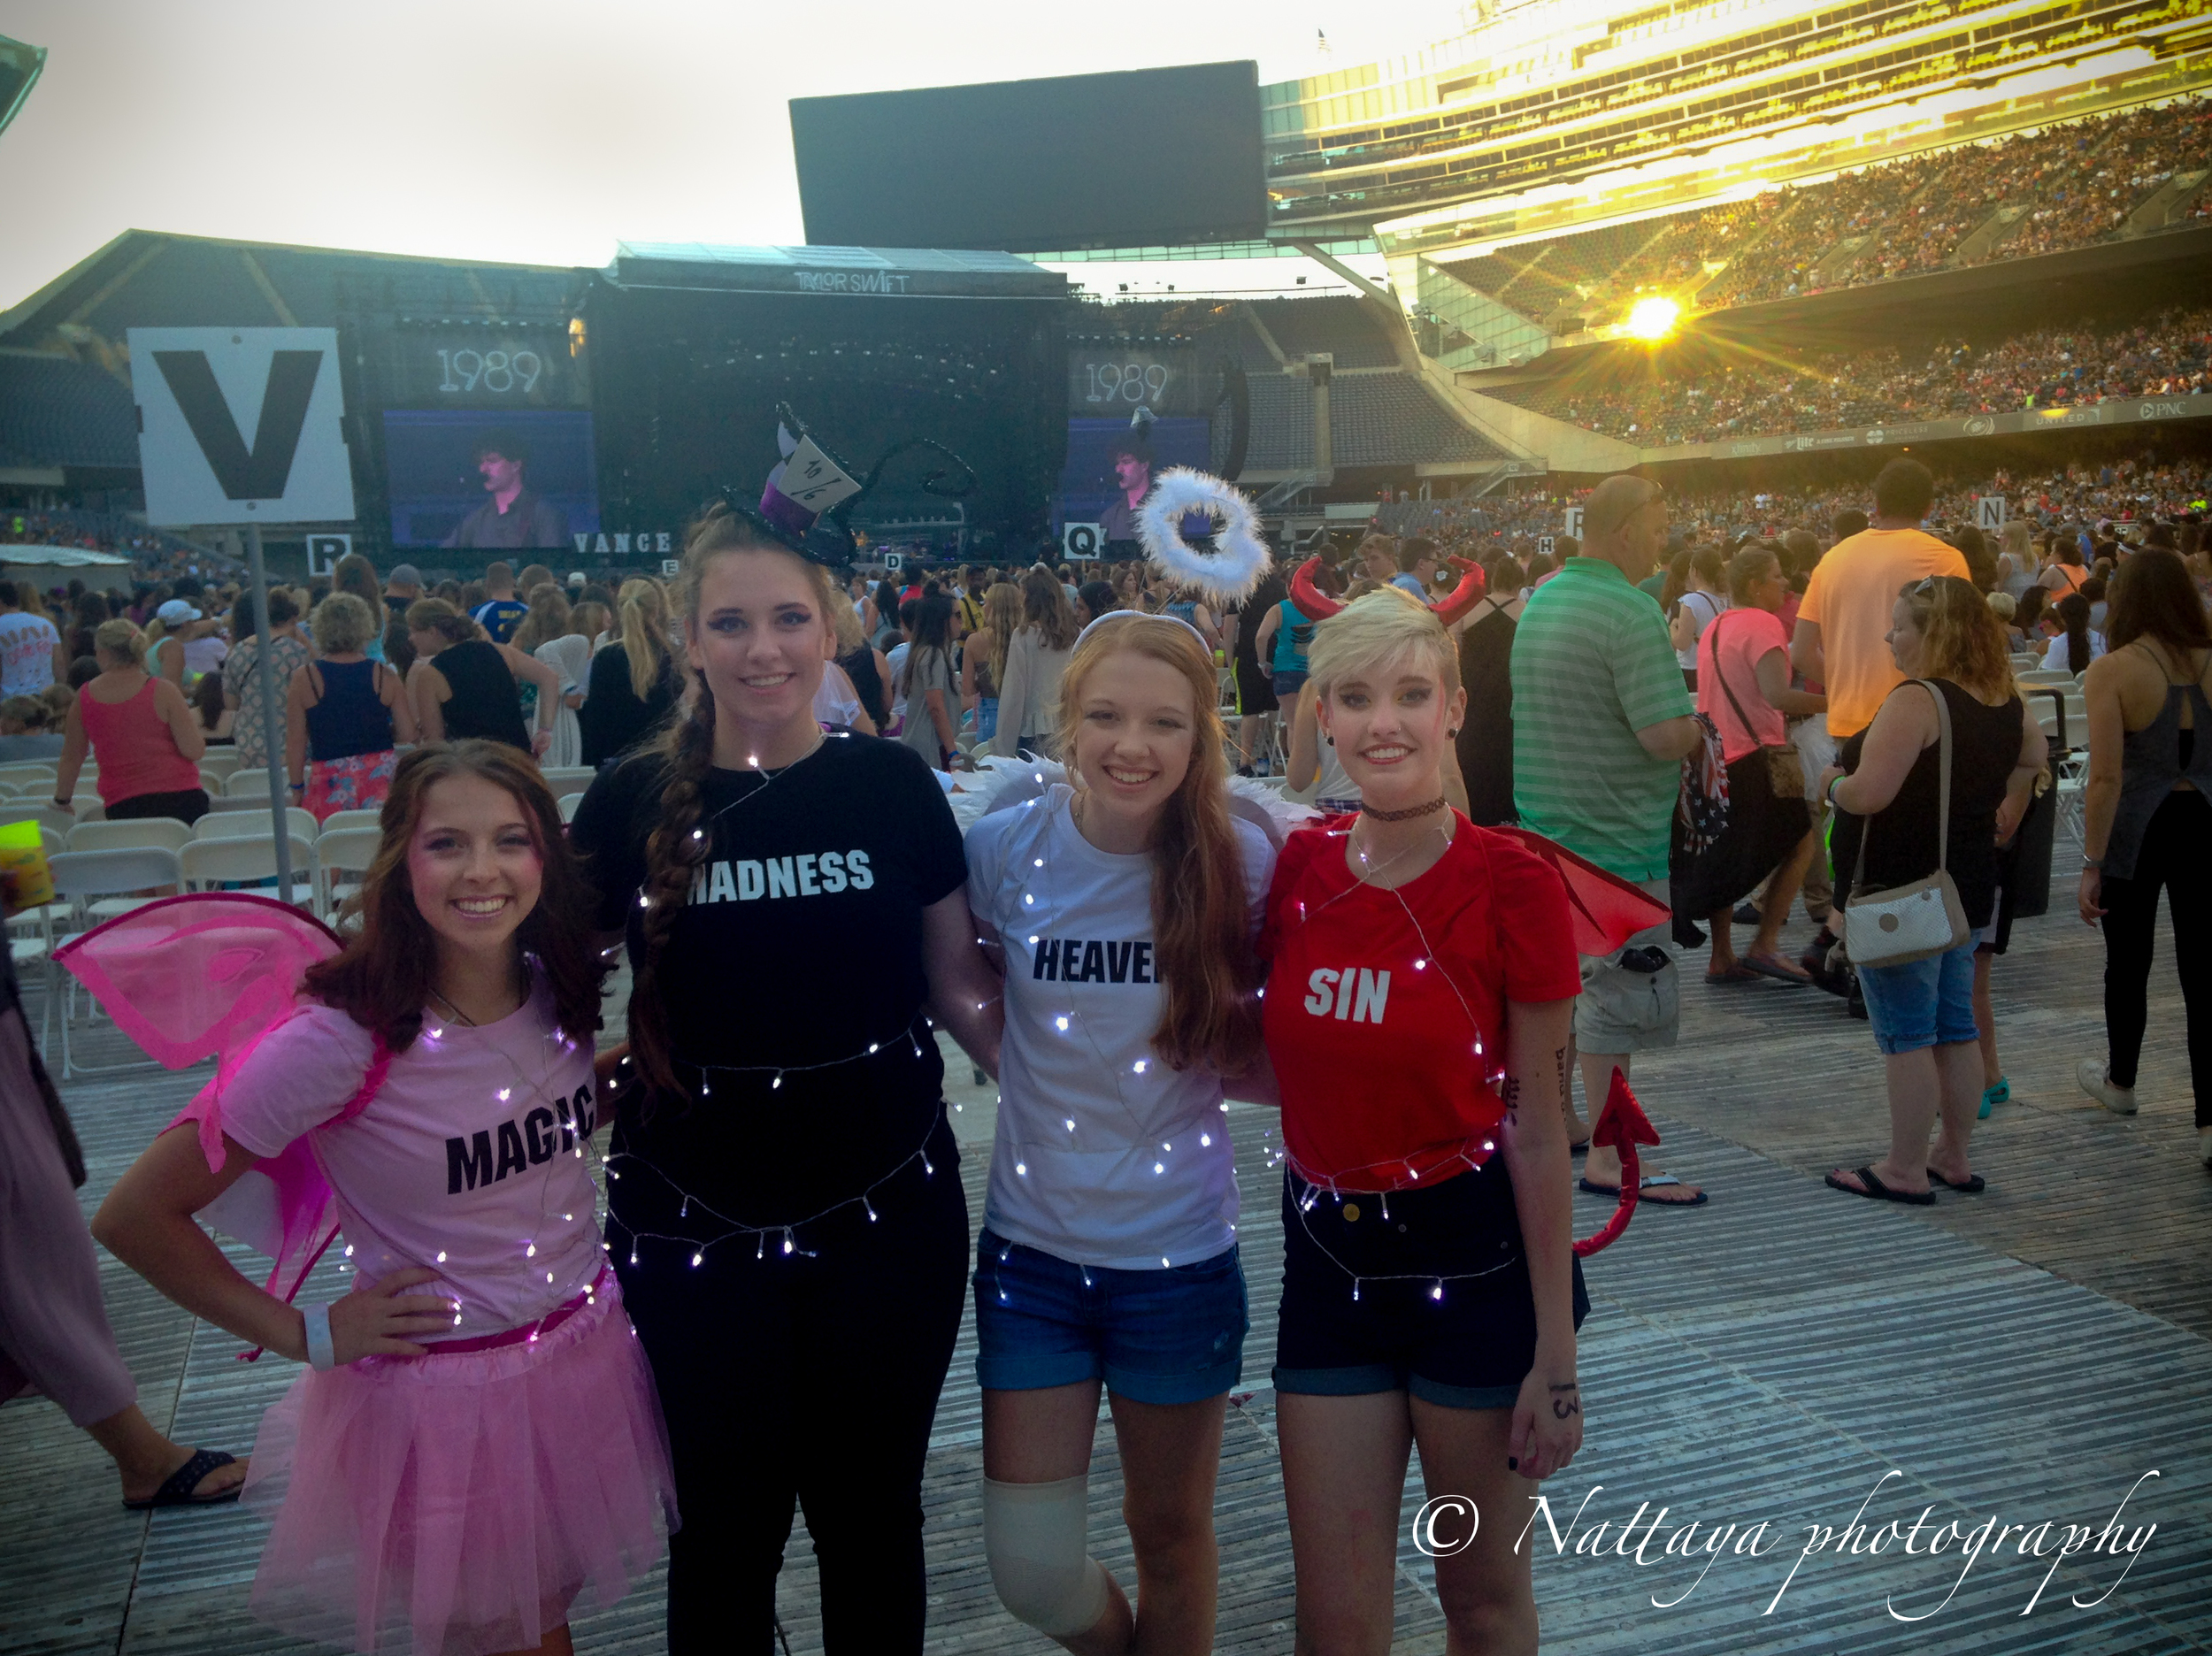 Taylor Swift 1989World Tour Concert 2